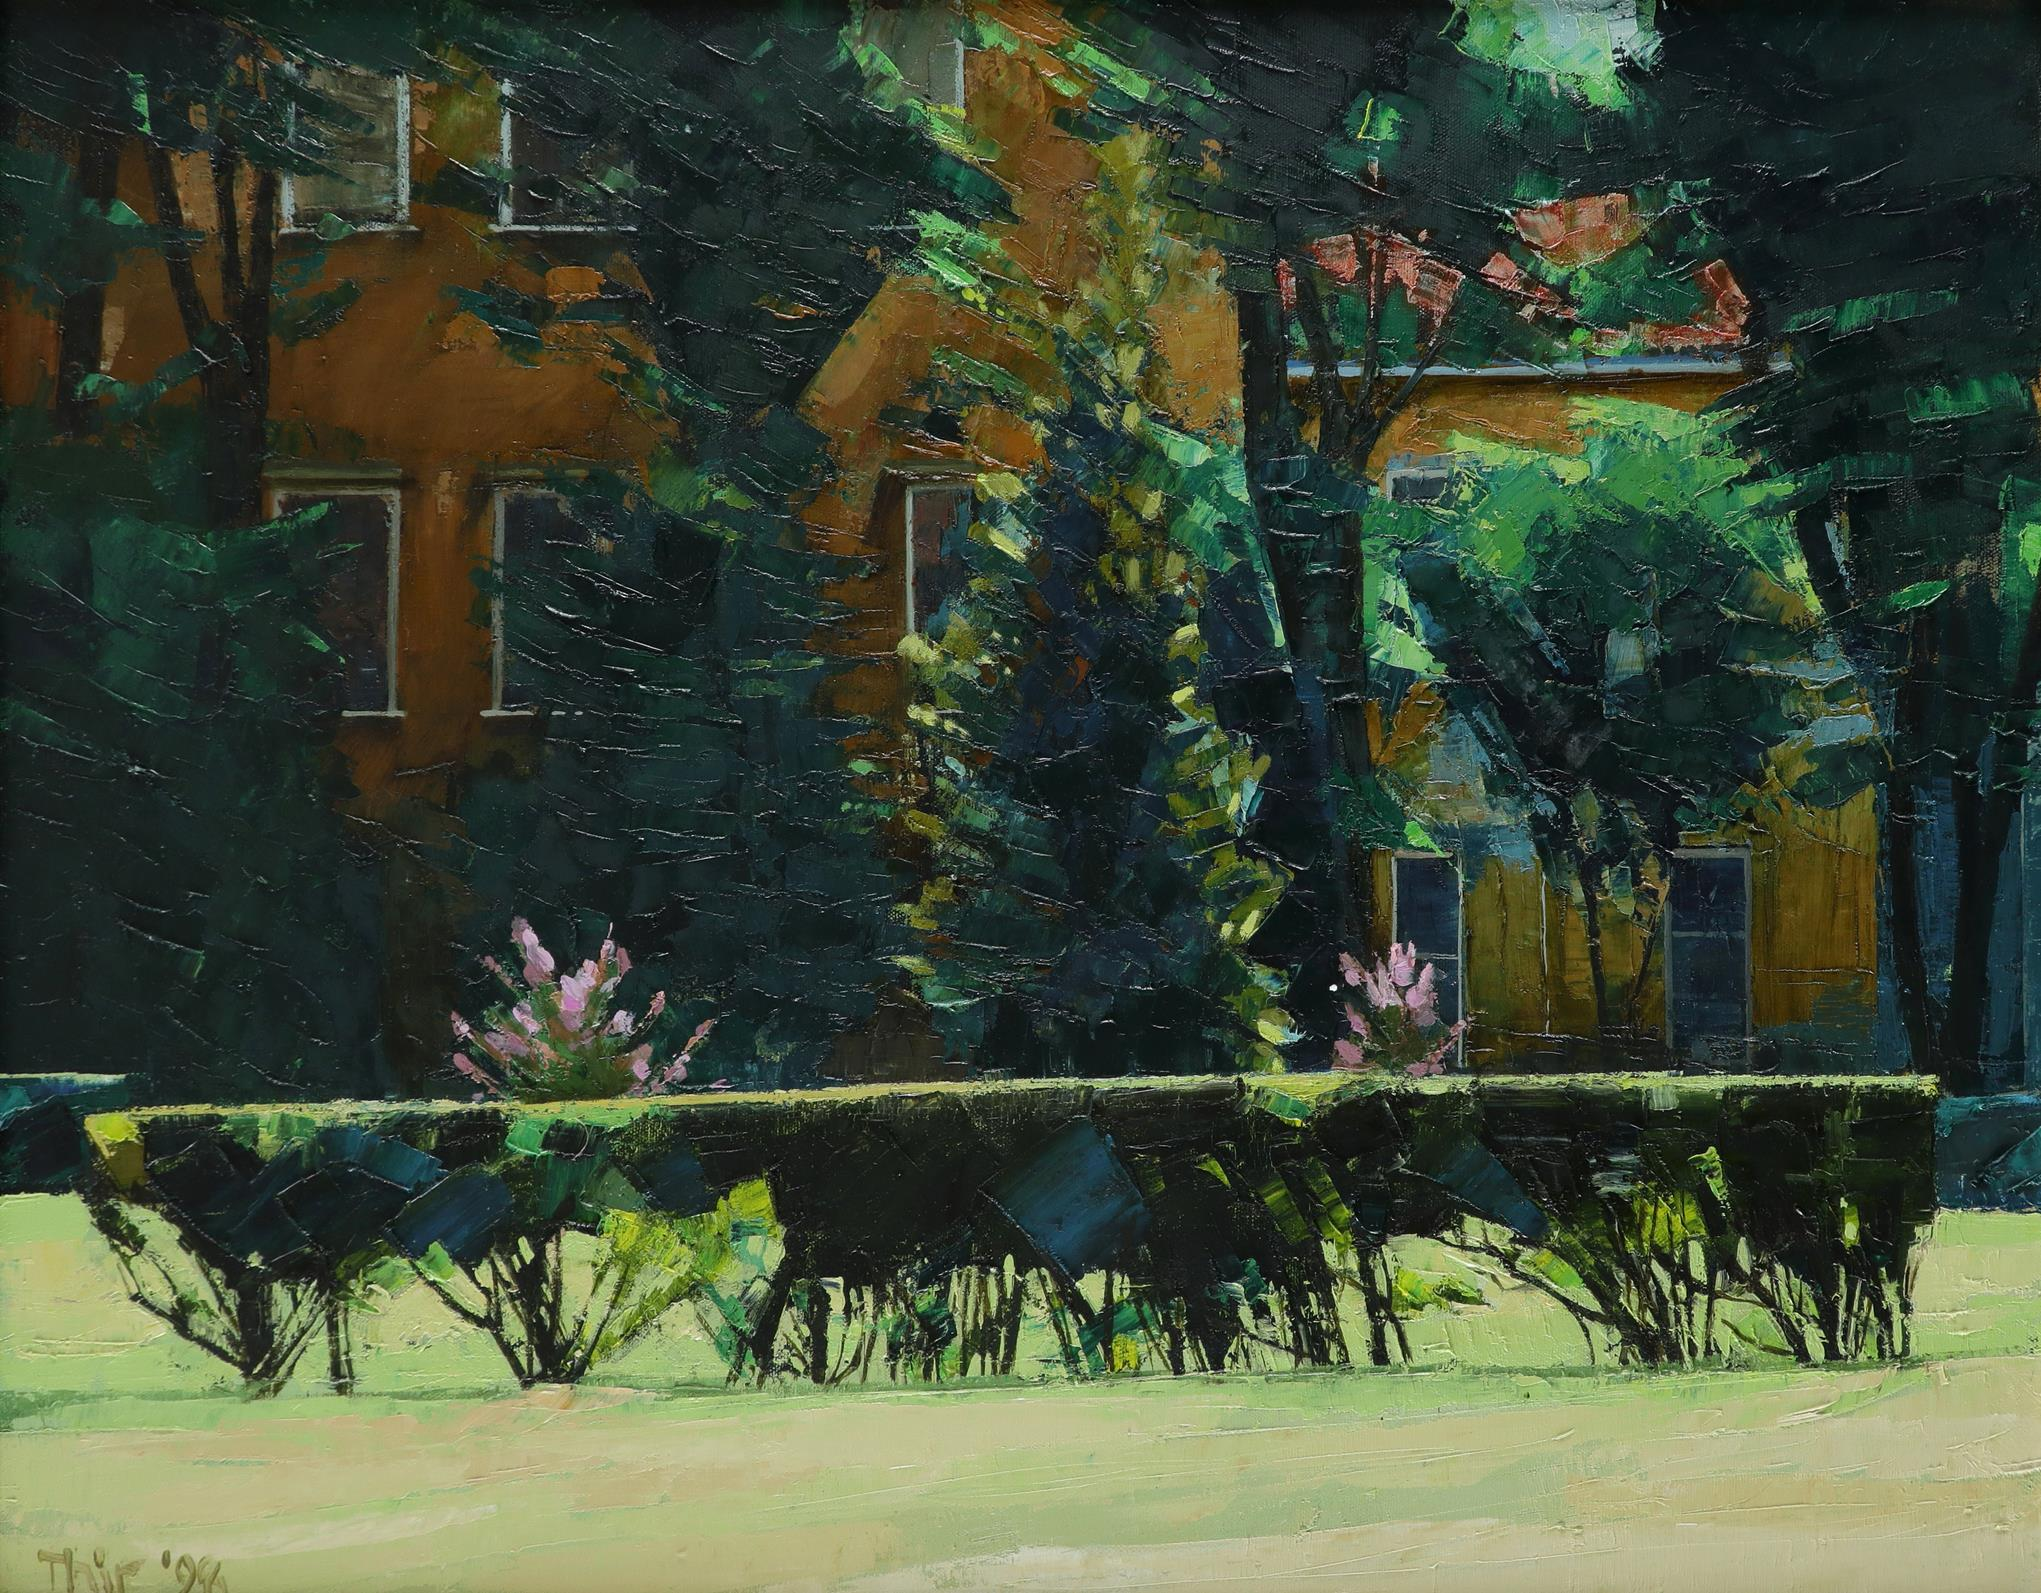 ‡John Thirlwall (b.1943) Ducal Palace Gardens, Mantua Signed and dated Thir '98 (lower left), and